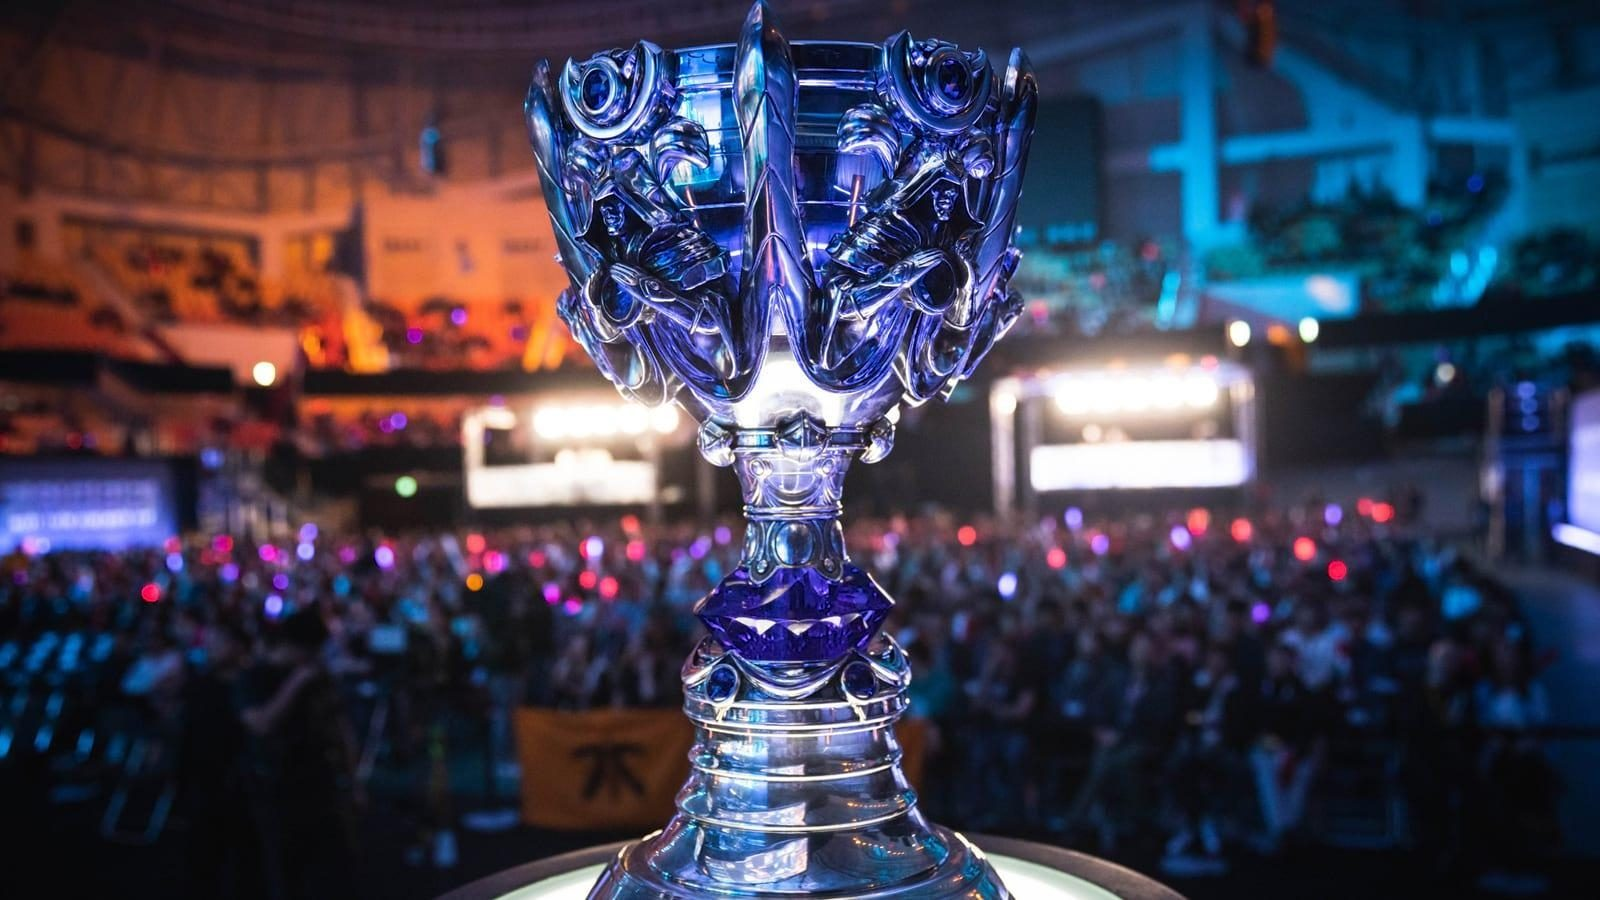 LoL taca - Mundial de League of Legends 2019: tudo o que precisa saber